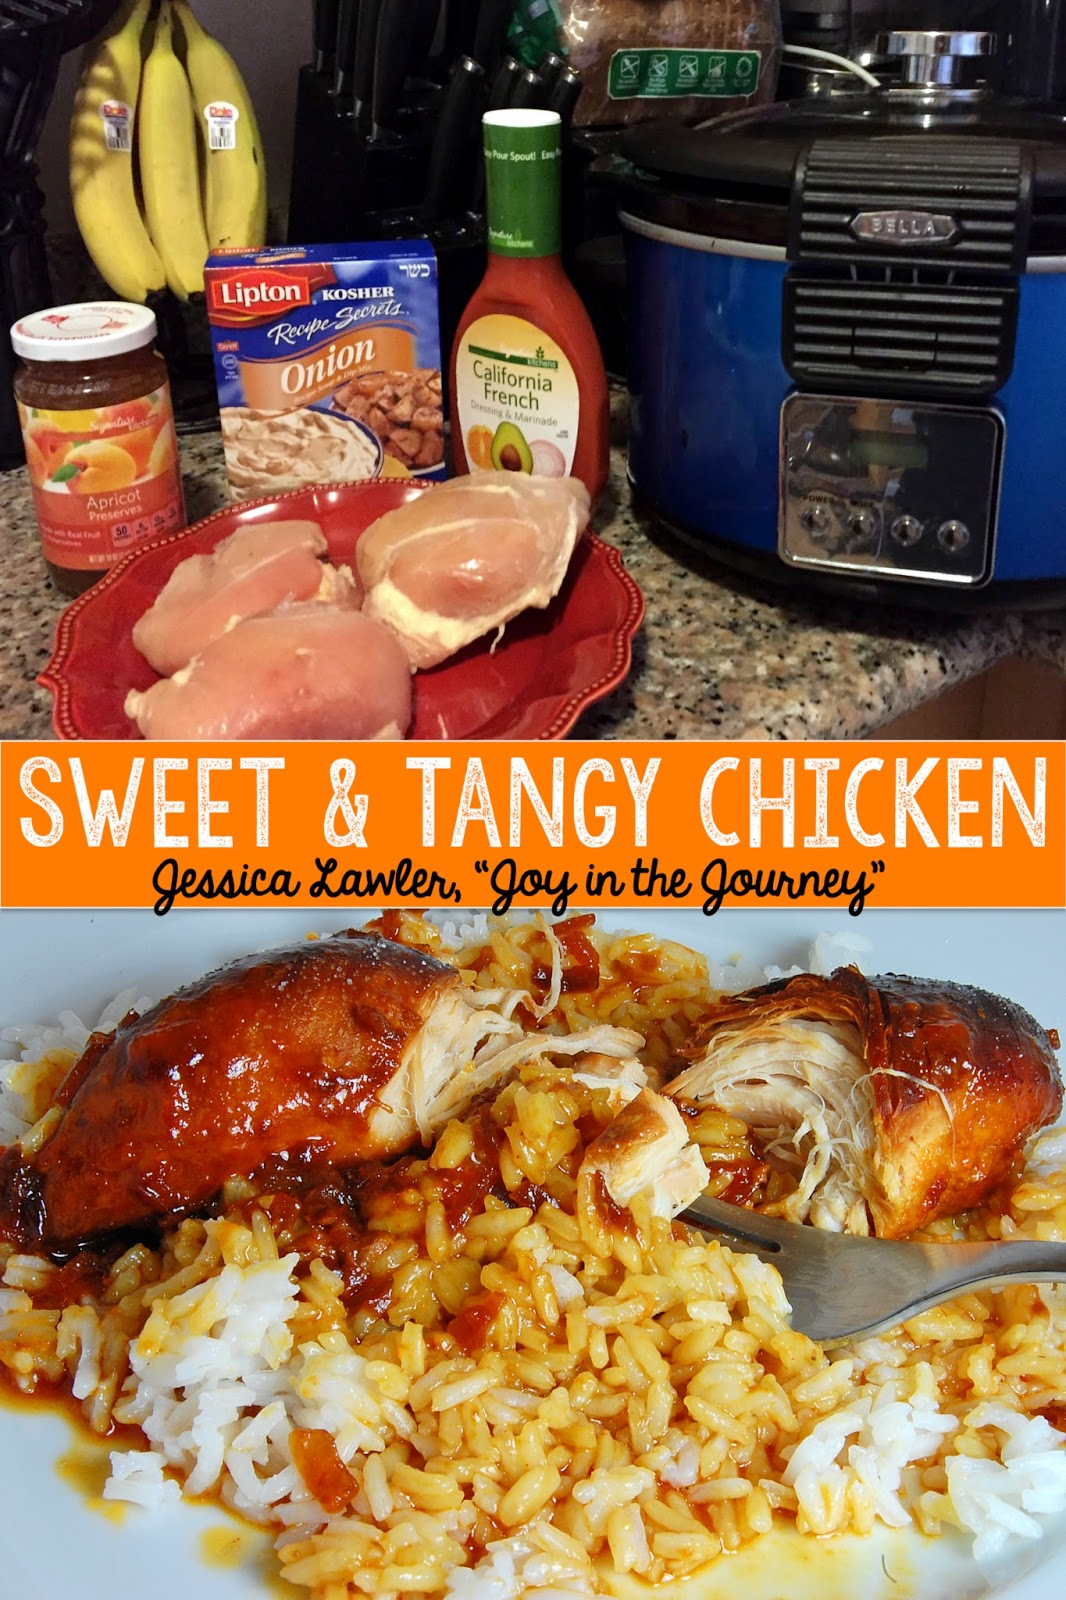 This quick and easy crock pot meal is the delicious blend of sweet and tangy - and with only four ingredients, it's a great go-to for week night dinners.